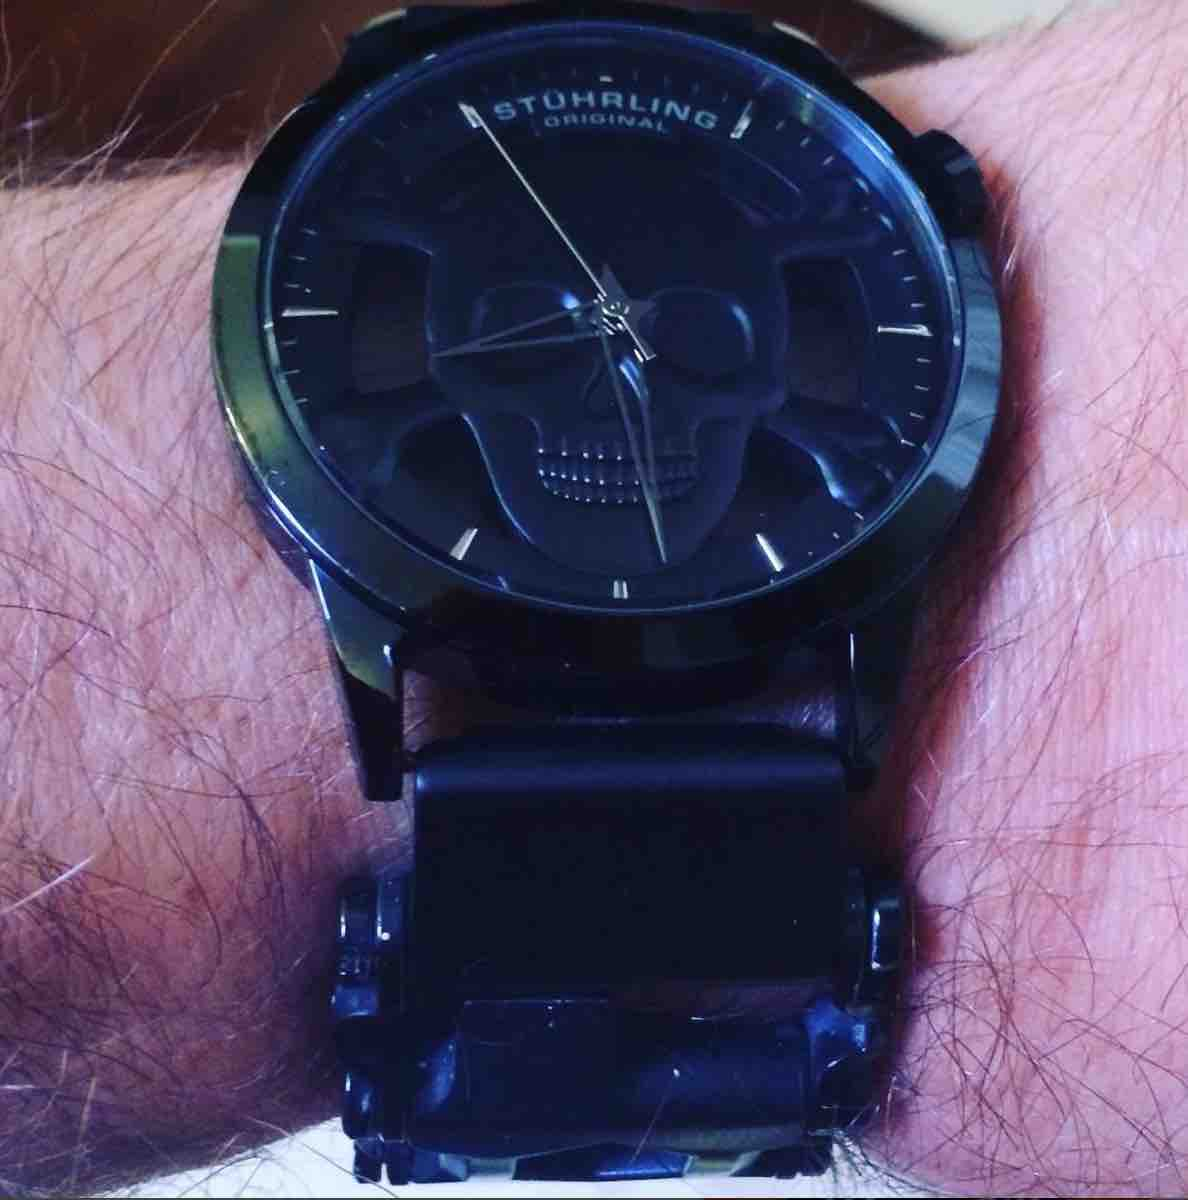 Leatherman Watch Black